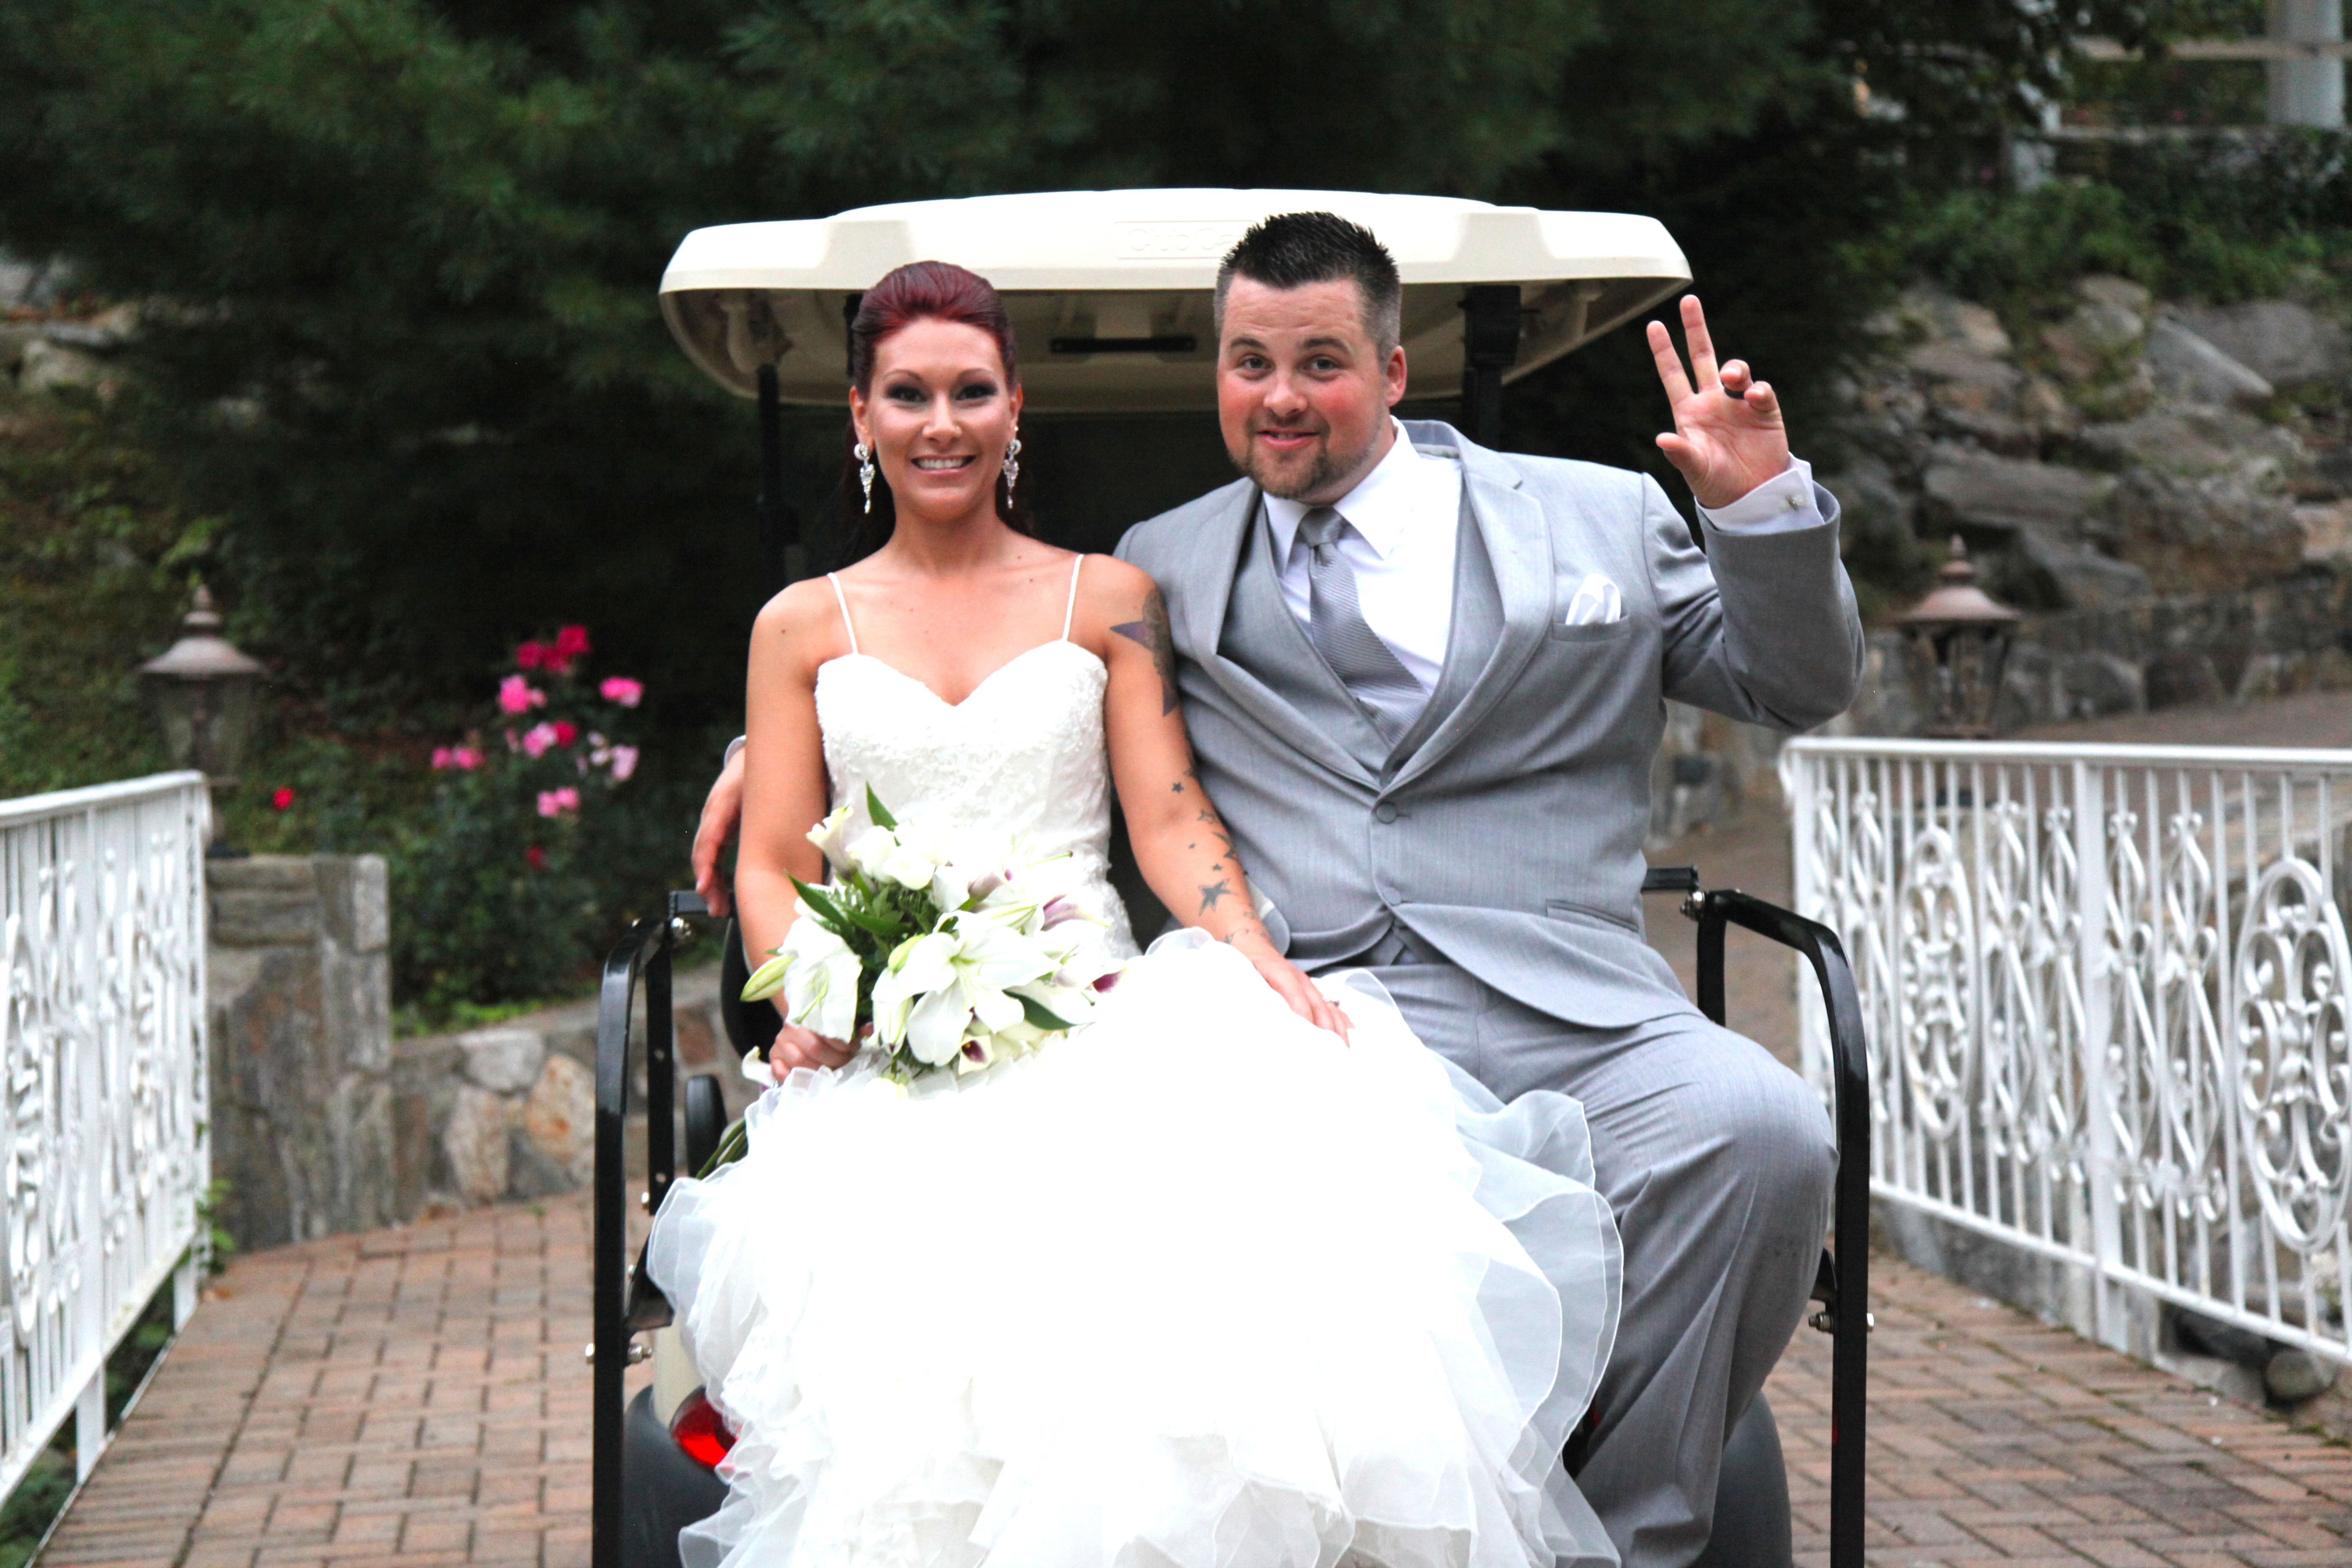 Bride and Groom in a Golf Cart